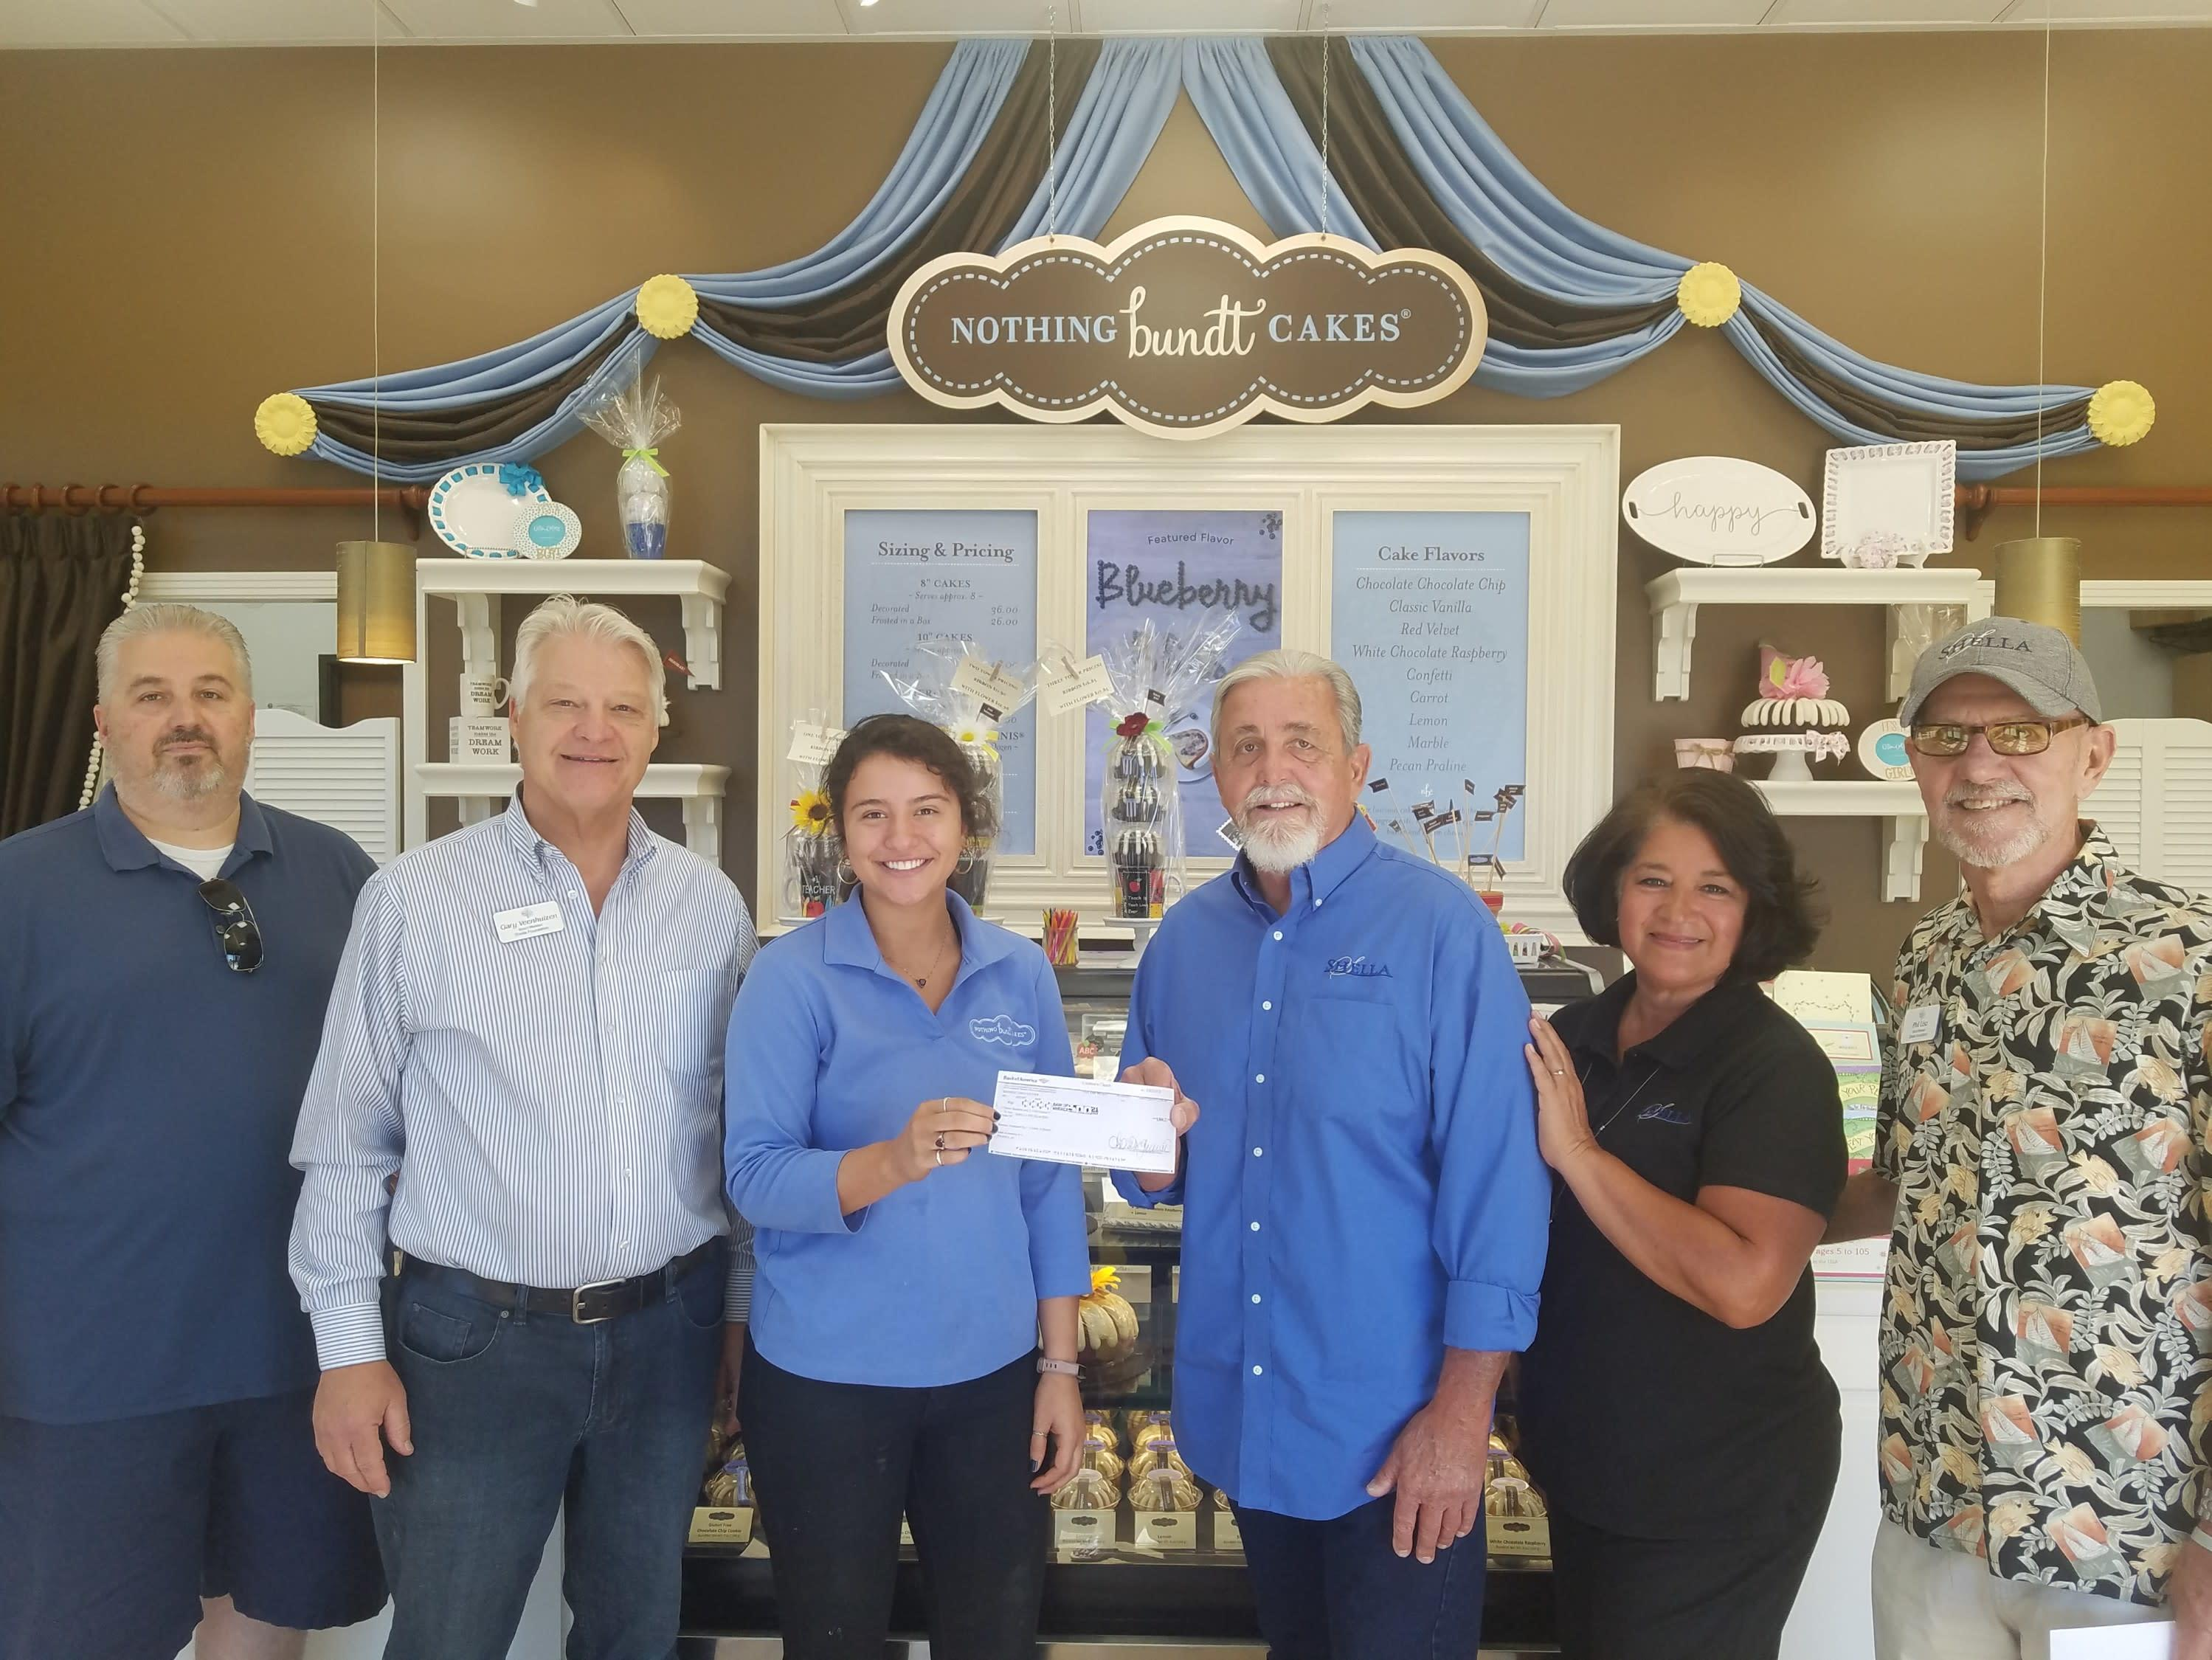 fundraiser with noting bundt cakes